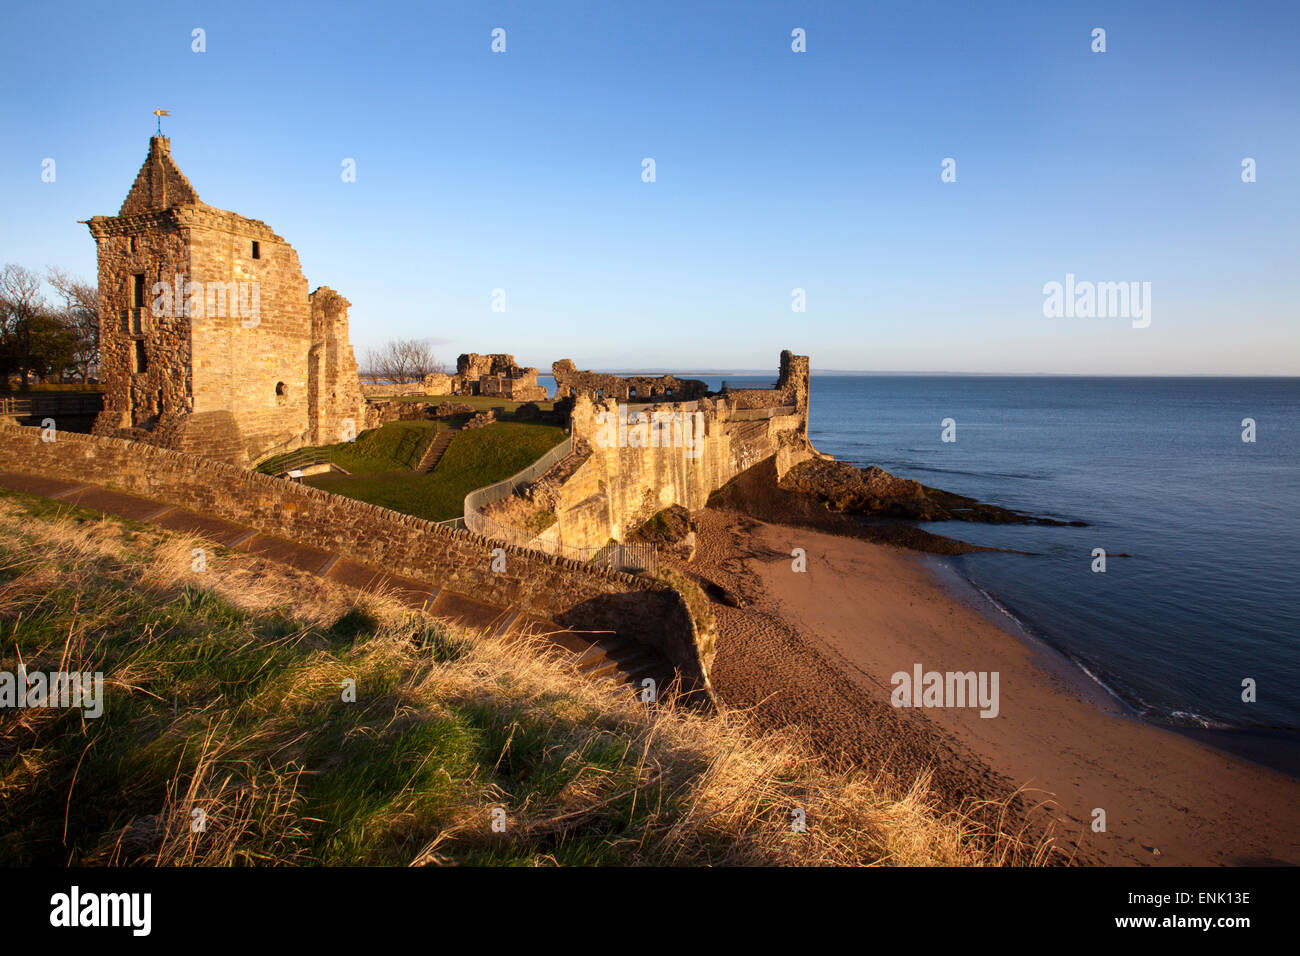 St. Andrews Castle and Castle Sands from The Scores at sunrise, Fife, Scotland, United Kingdom, Europe - Stock Image